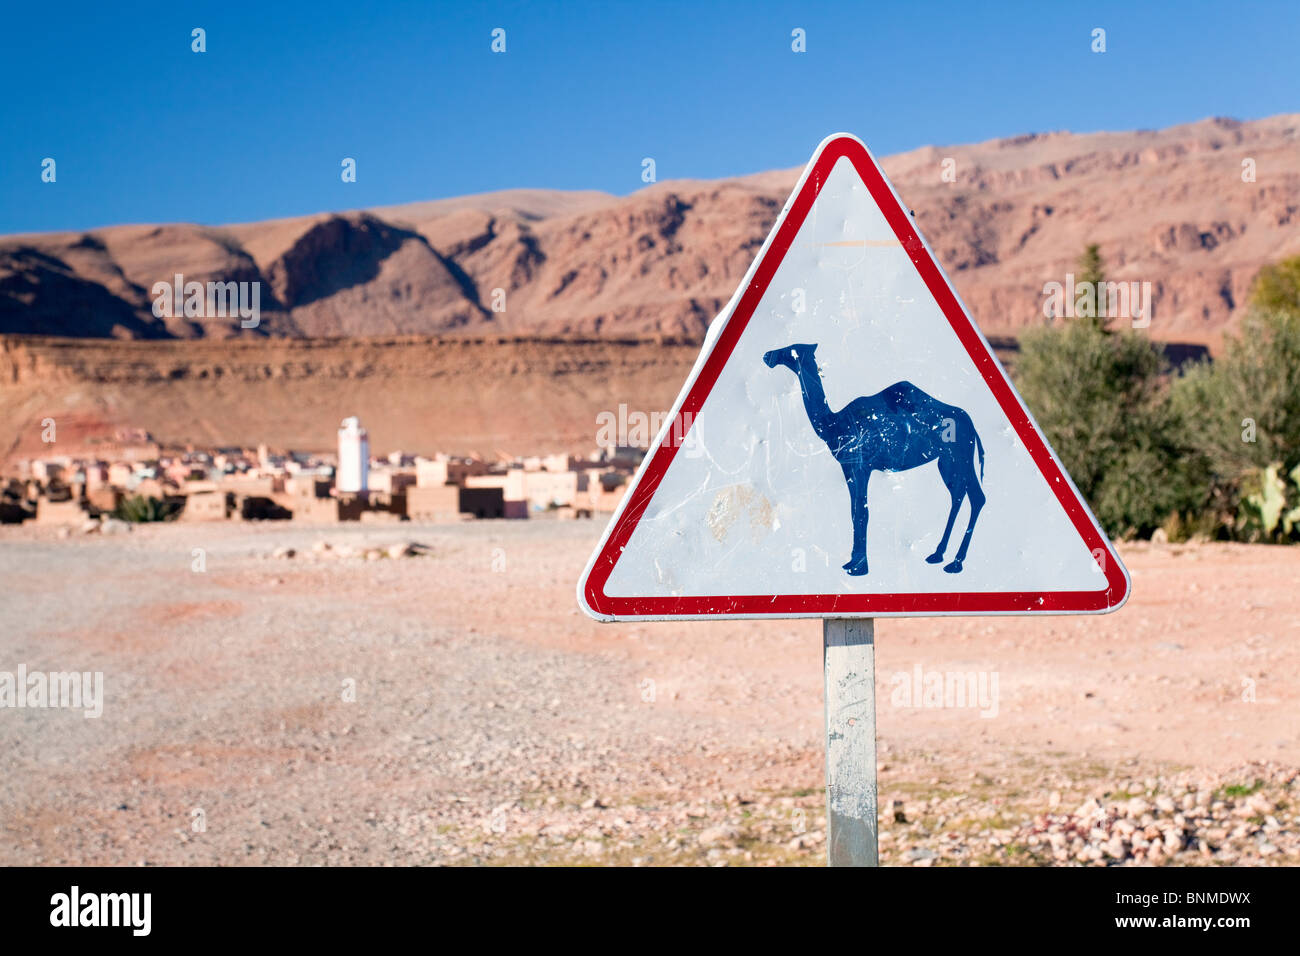 Camel road sign, Tinerhir, Dades Valley, Morocco - Stock Image